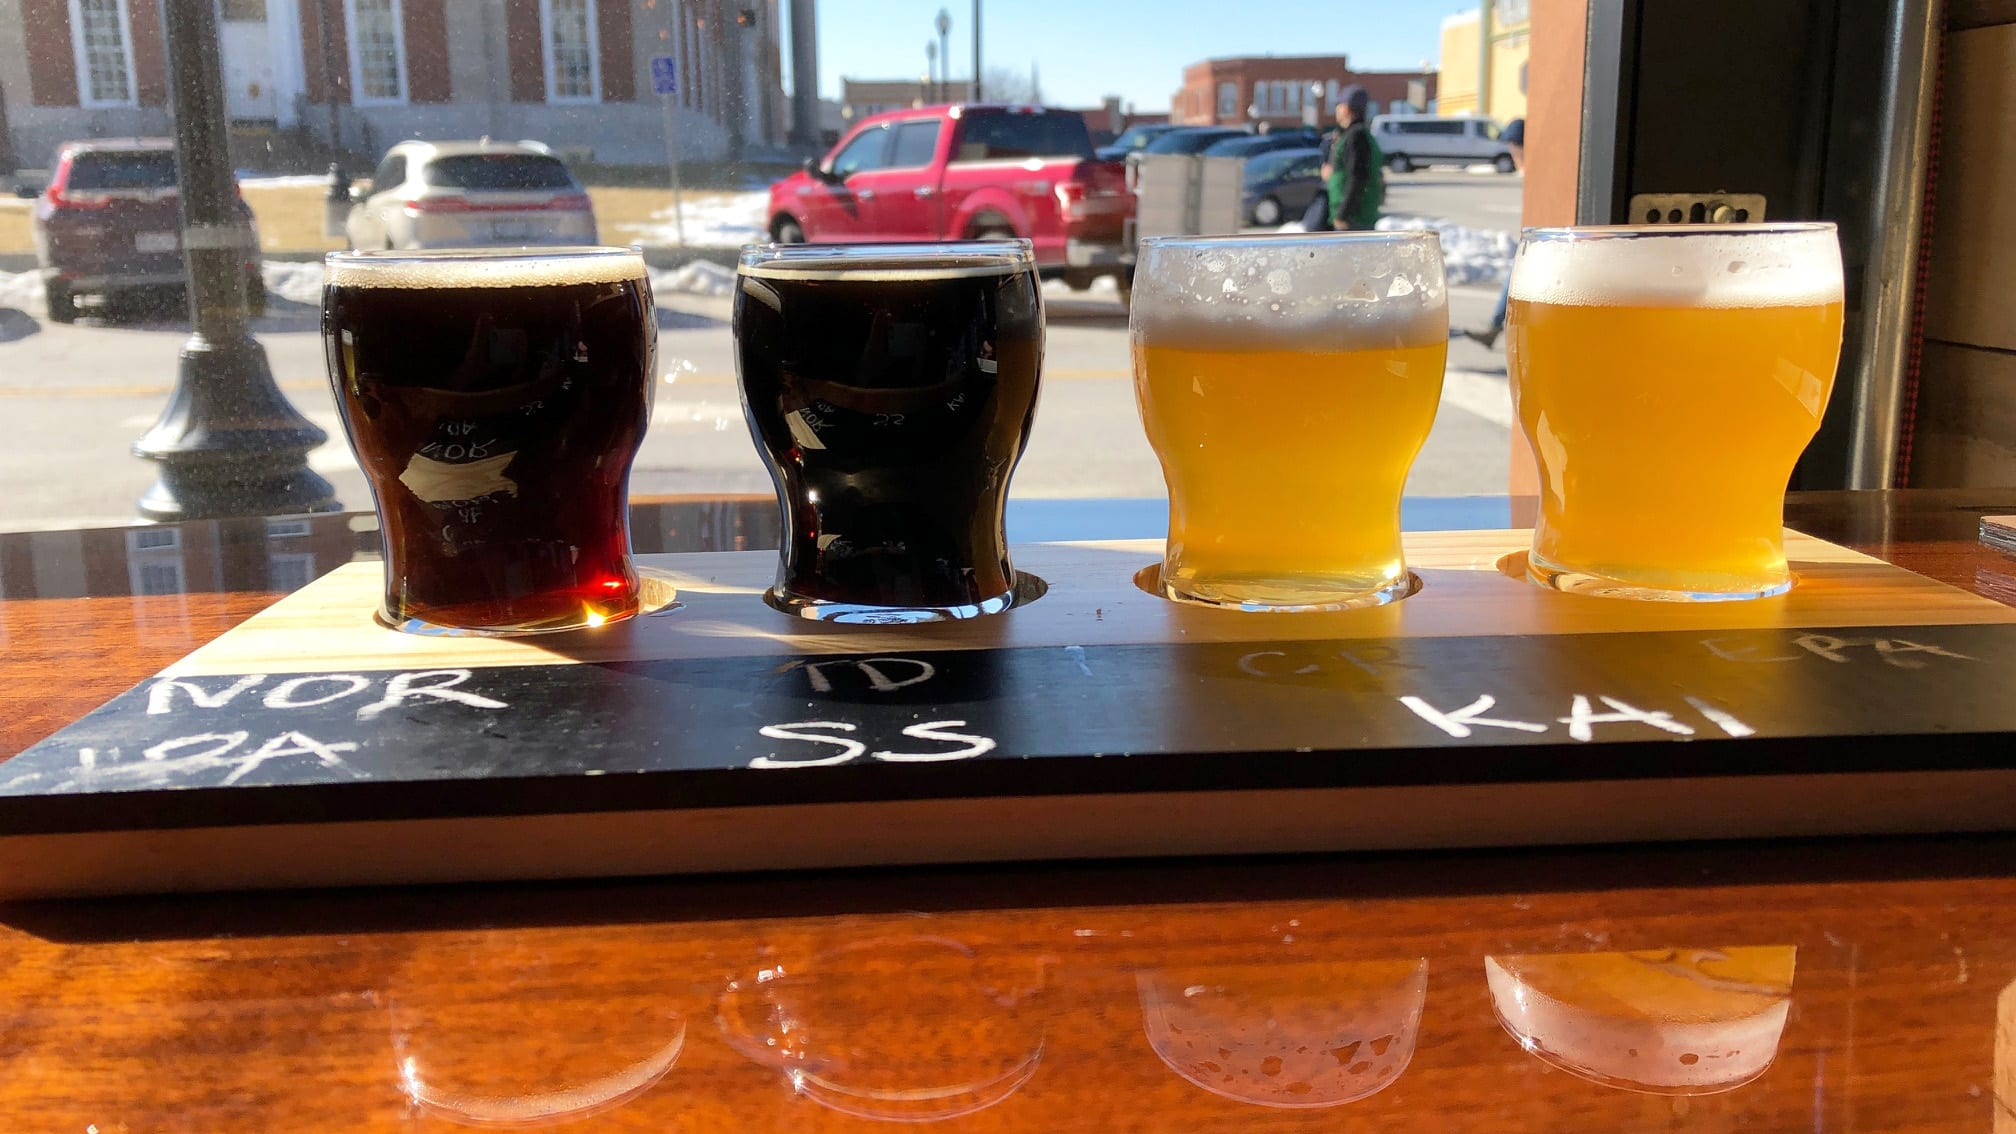 A flight of 3 Trails Brewing Co.'s